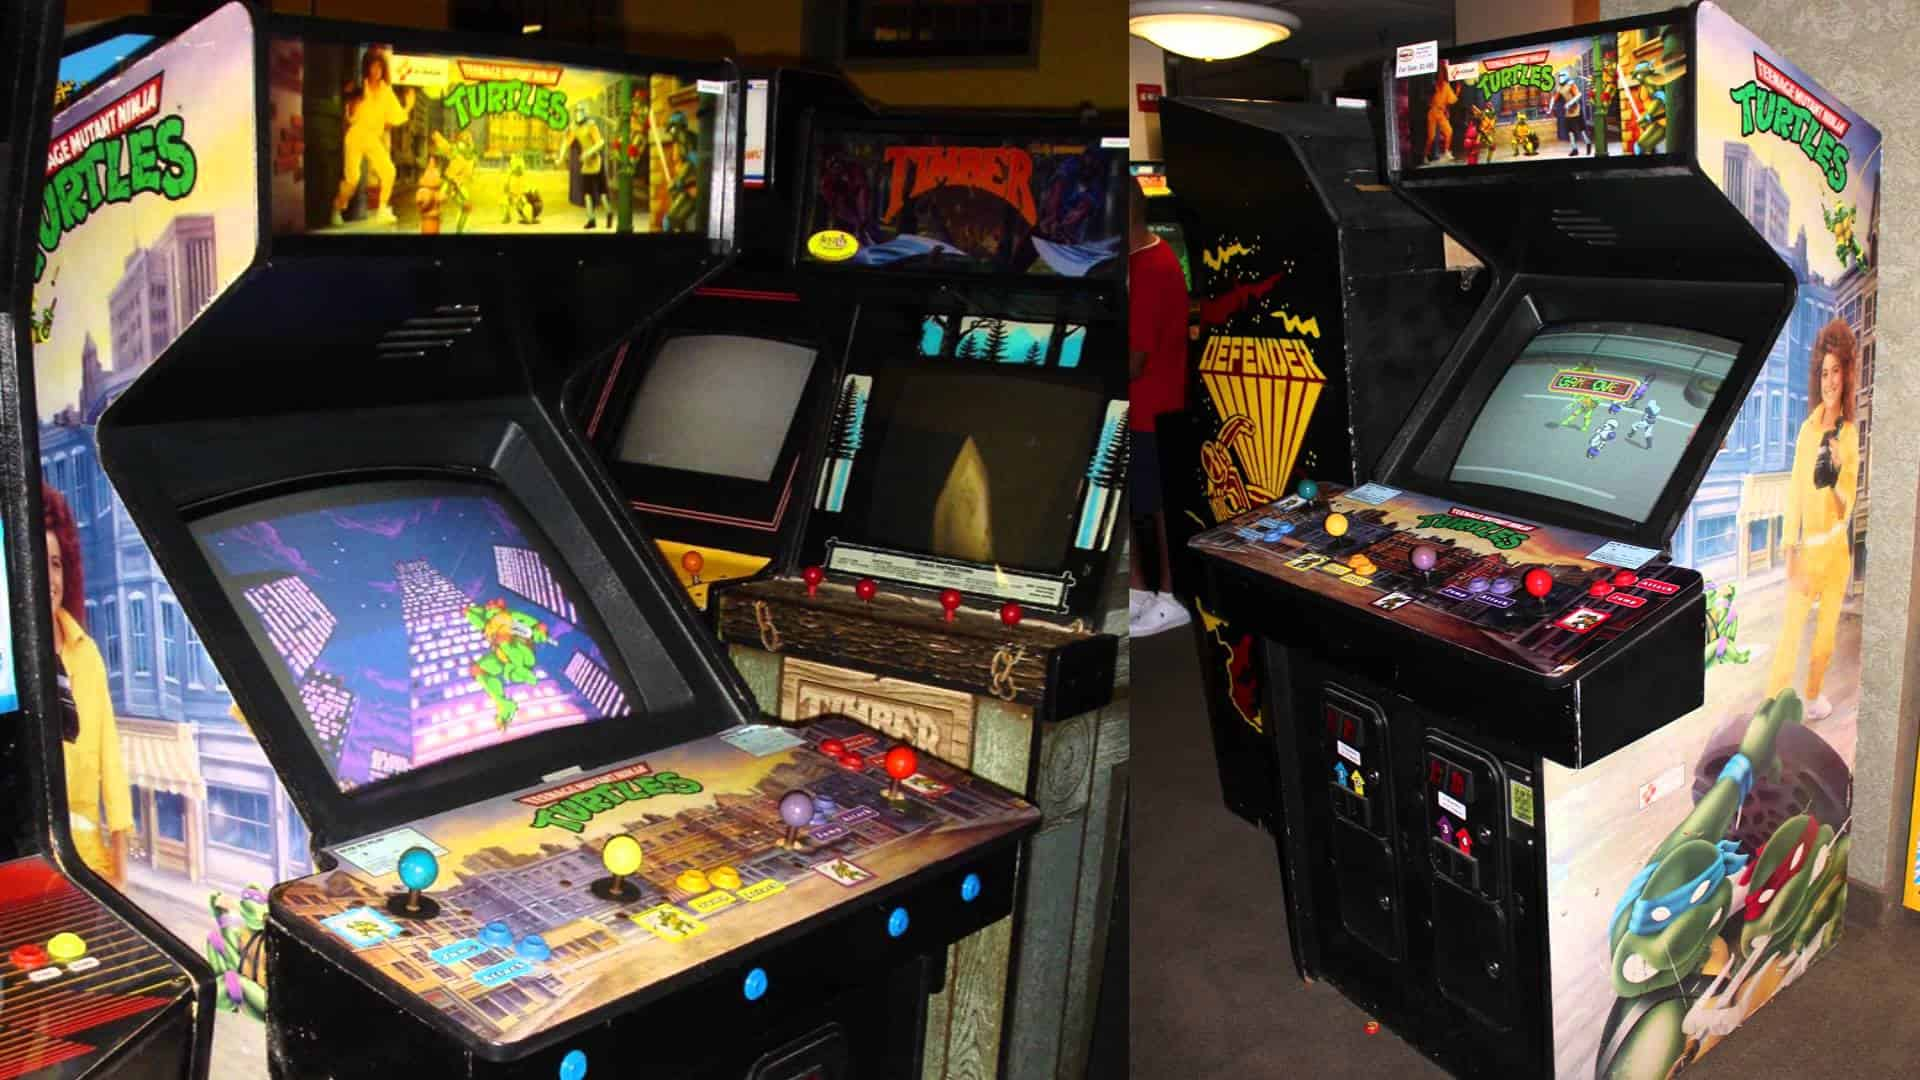 Vintage Arcade Games >> The Teenage Mutant Ninja Turtles Are Returning to the Arcade for the First Time in Over Two Decades